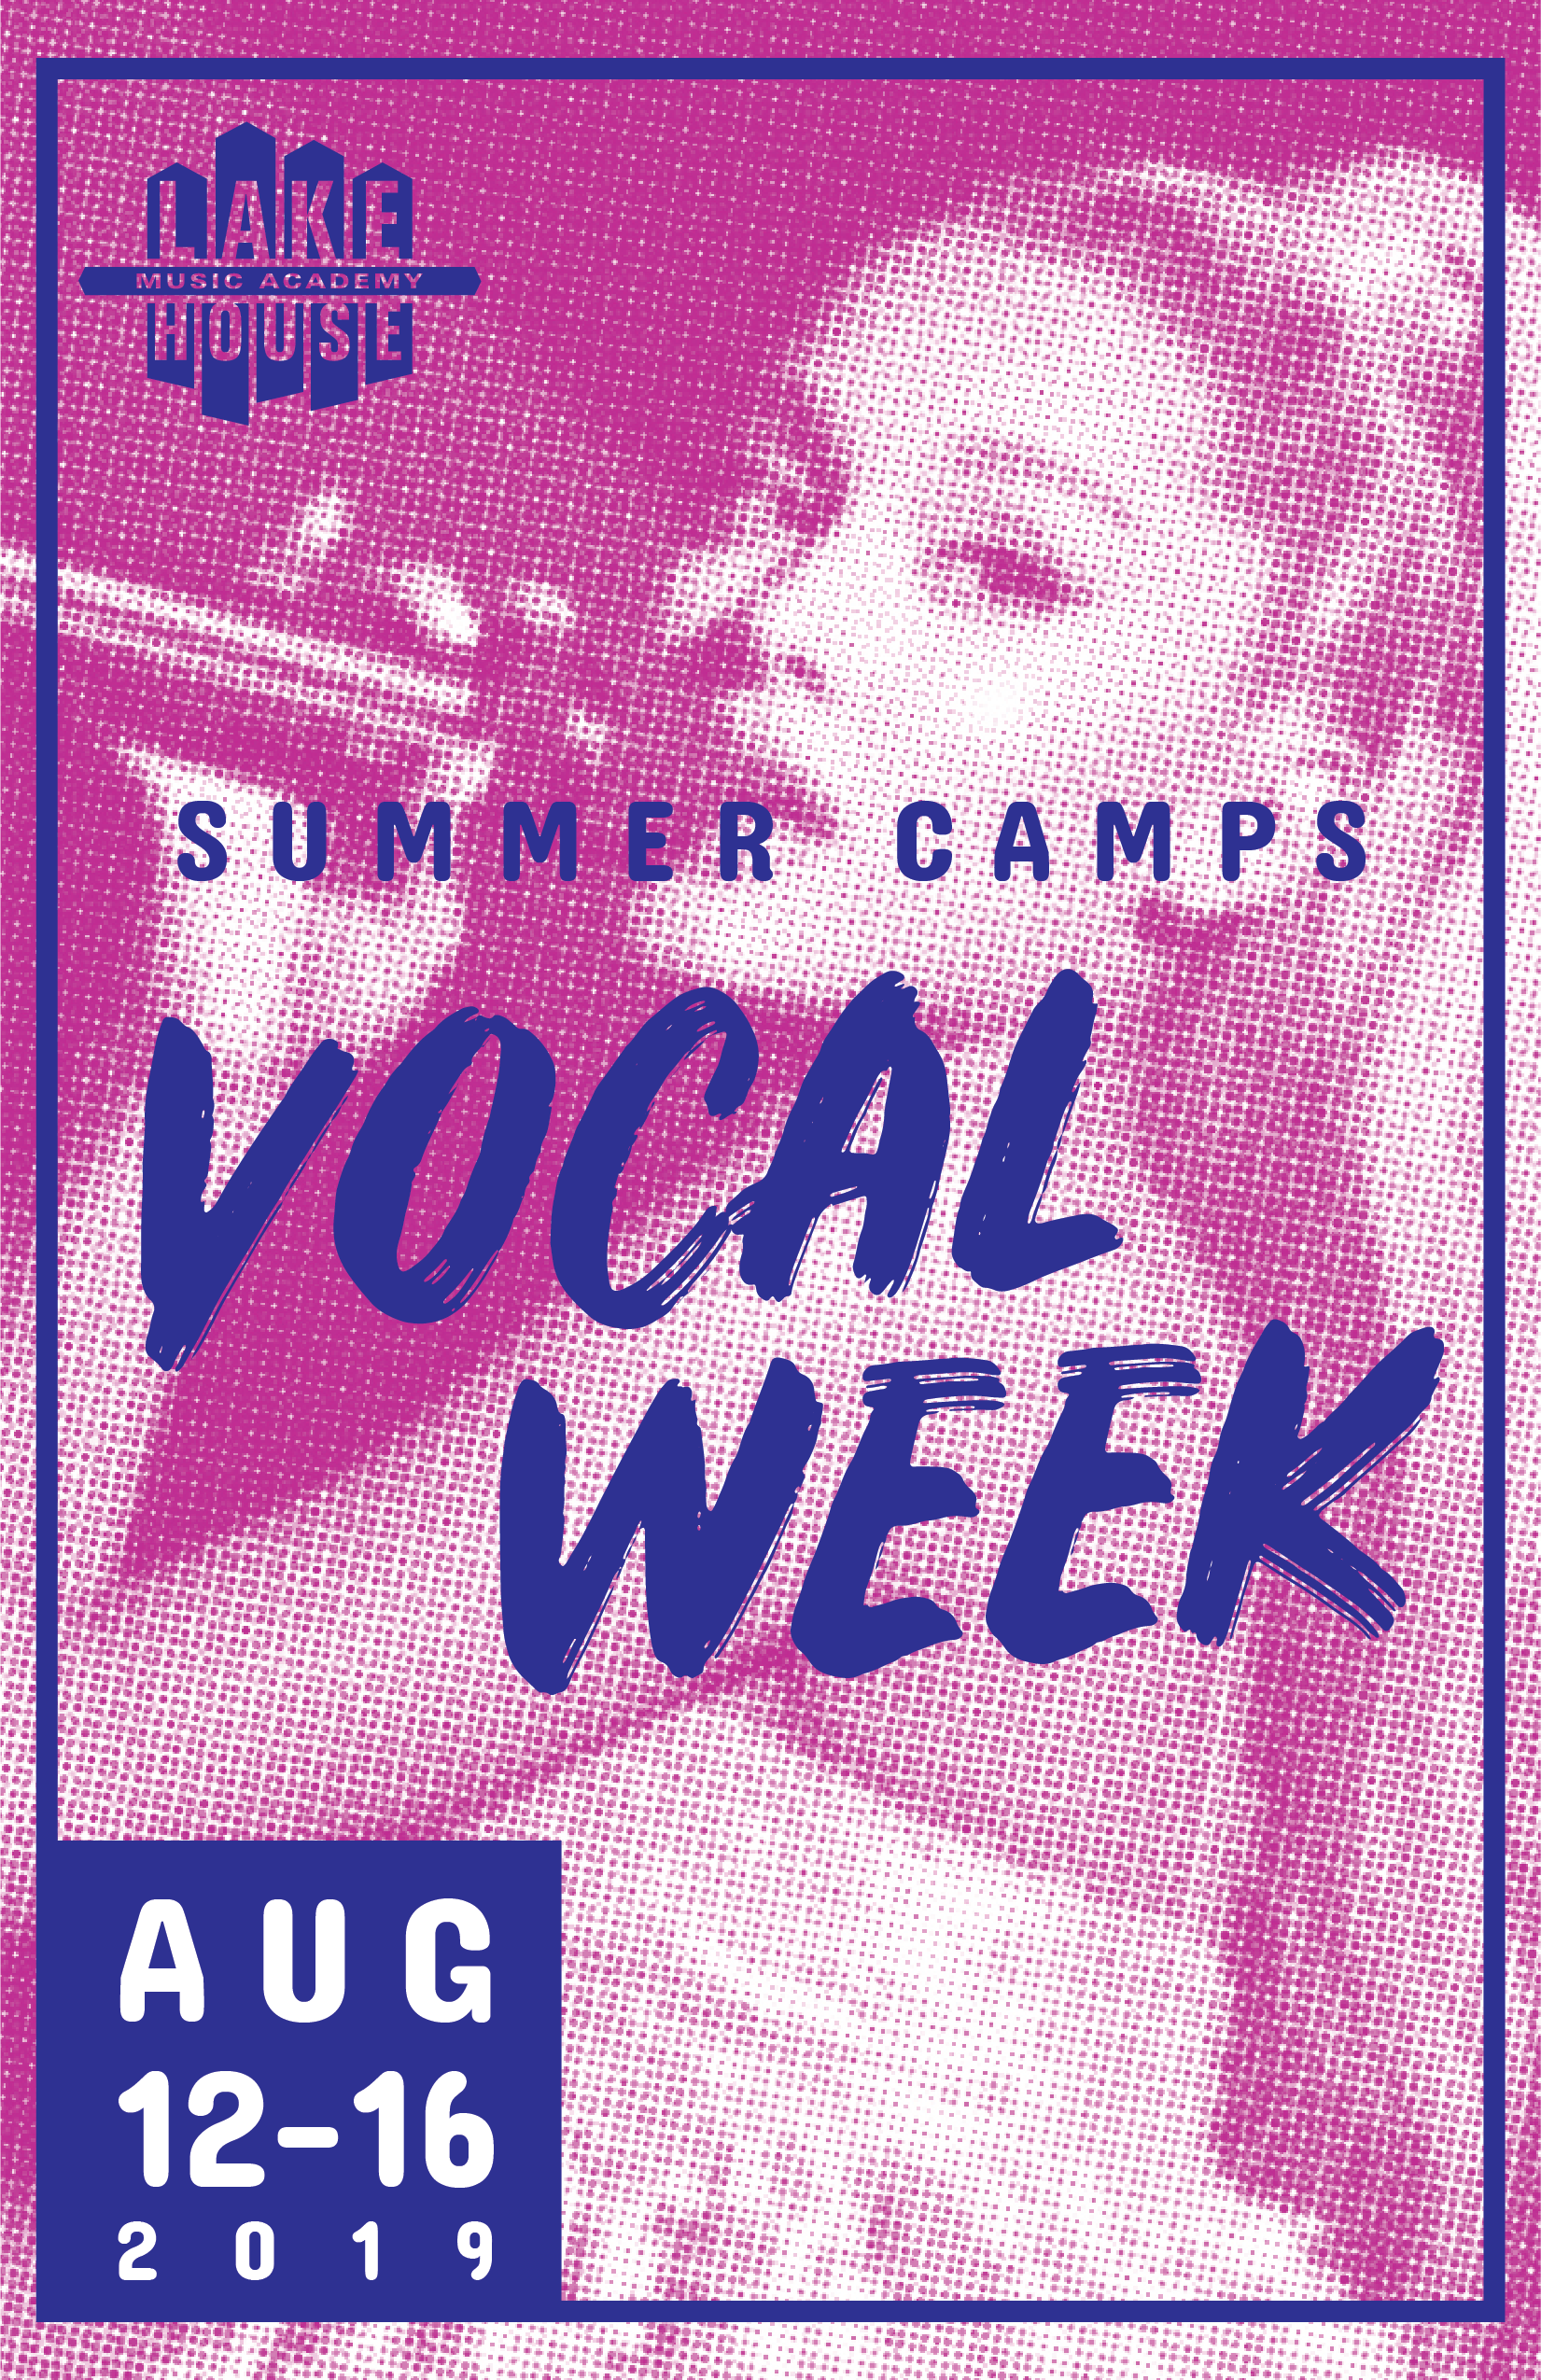 Vocal Week - August 12 - 16